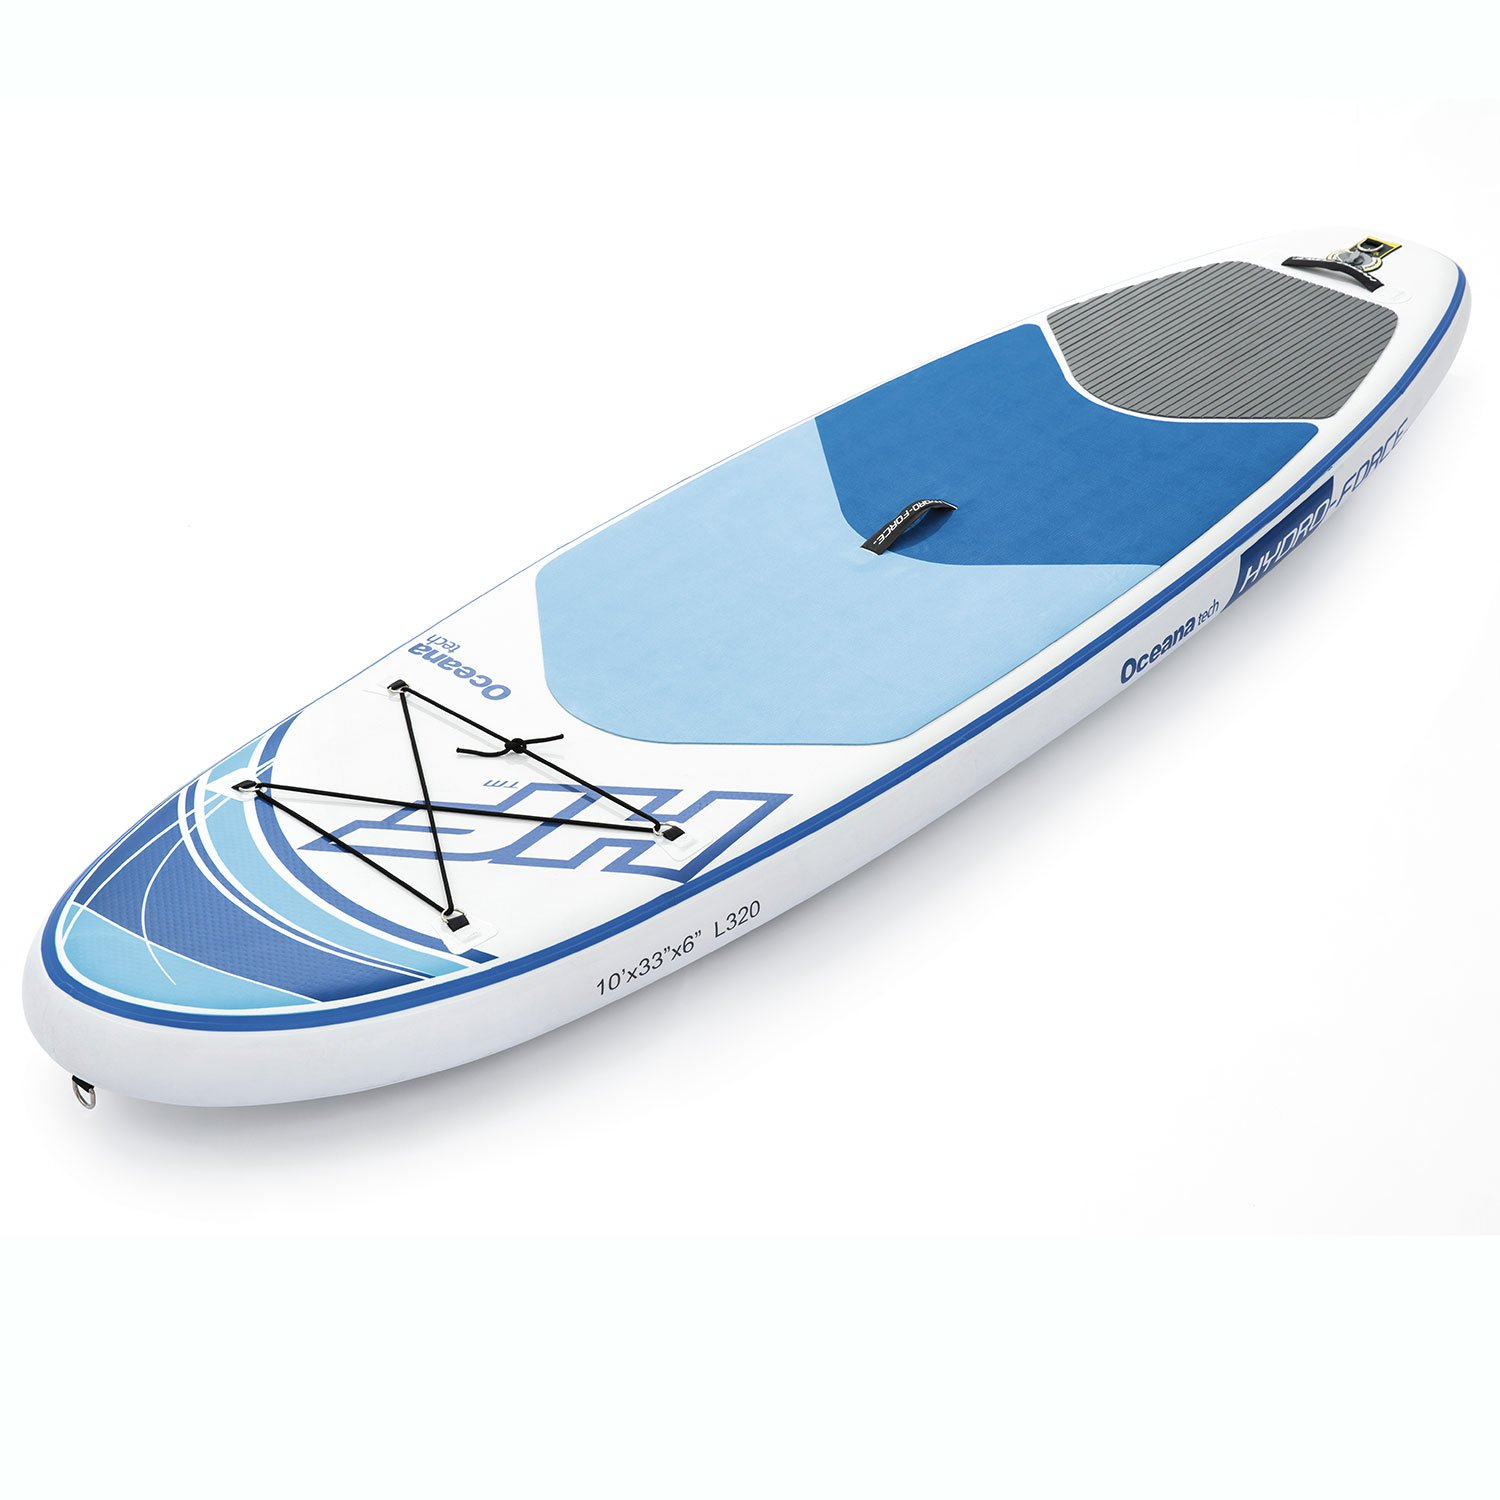 Bestway Hydro Force Inflatable 10 Foot Oceana Tech SUP Stand Up Paddle Board by Bestway